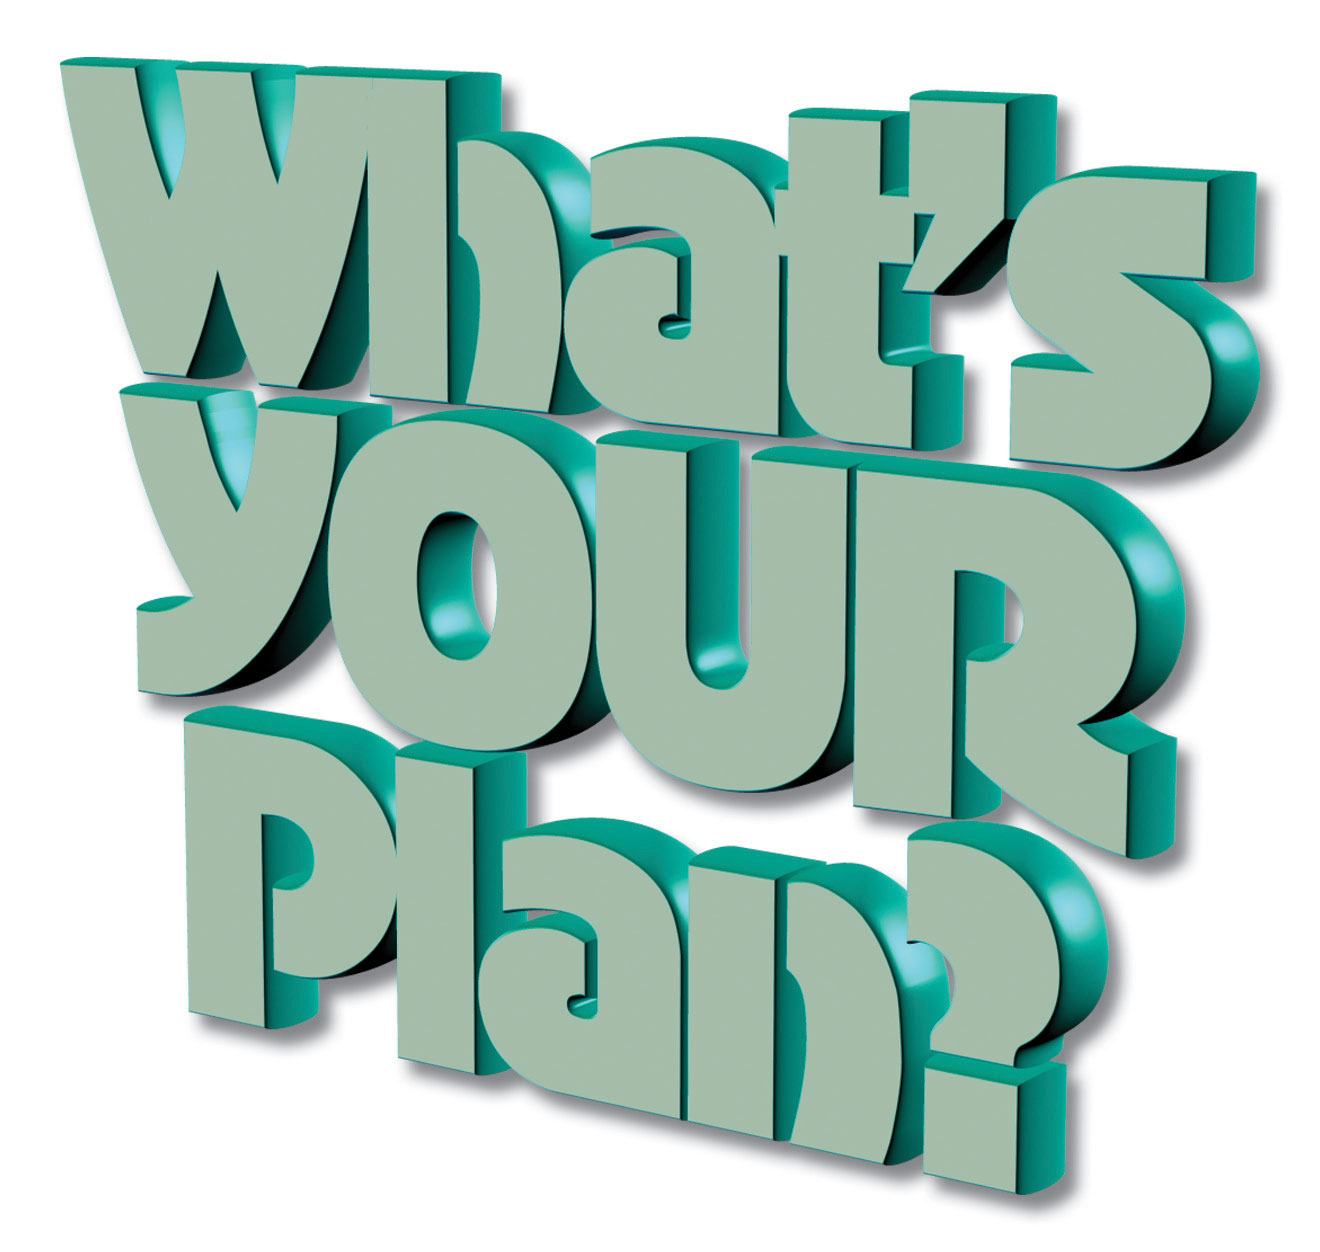 Getting help with a business plan